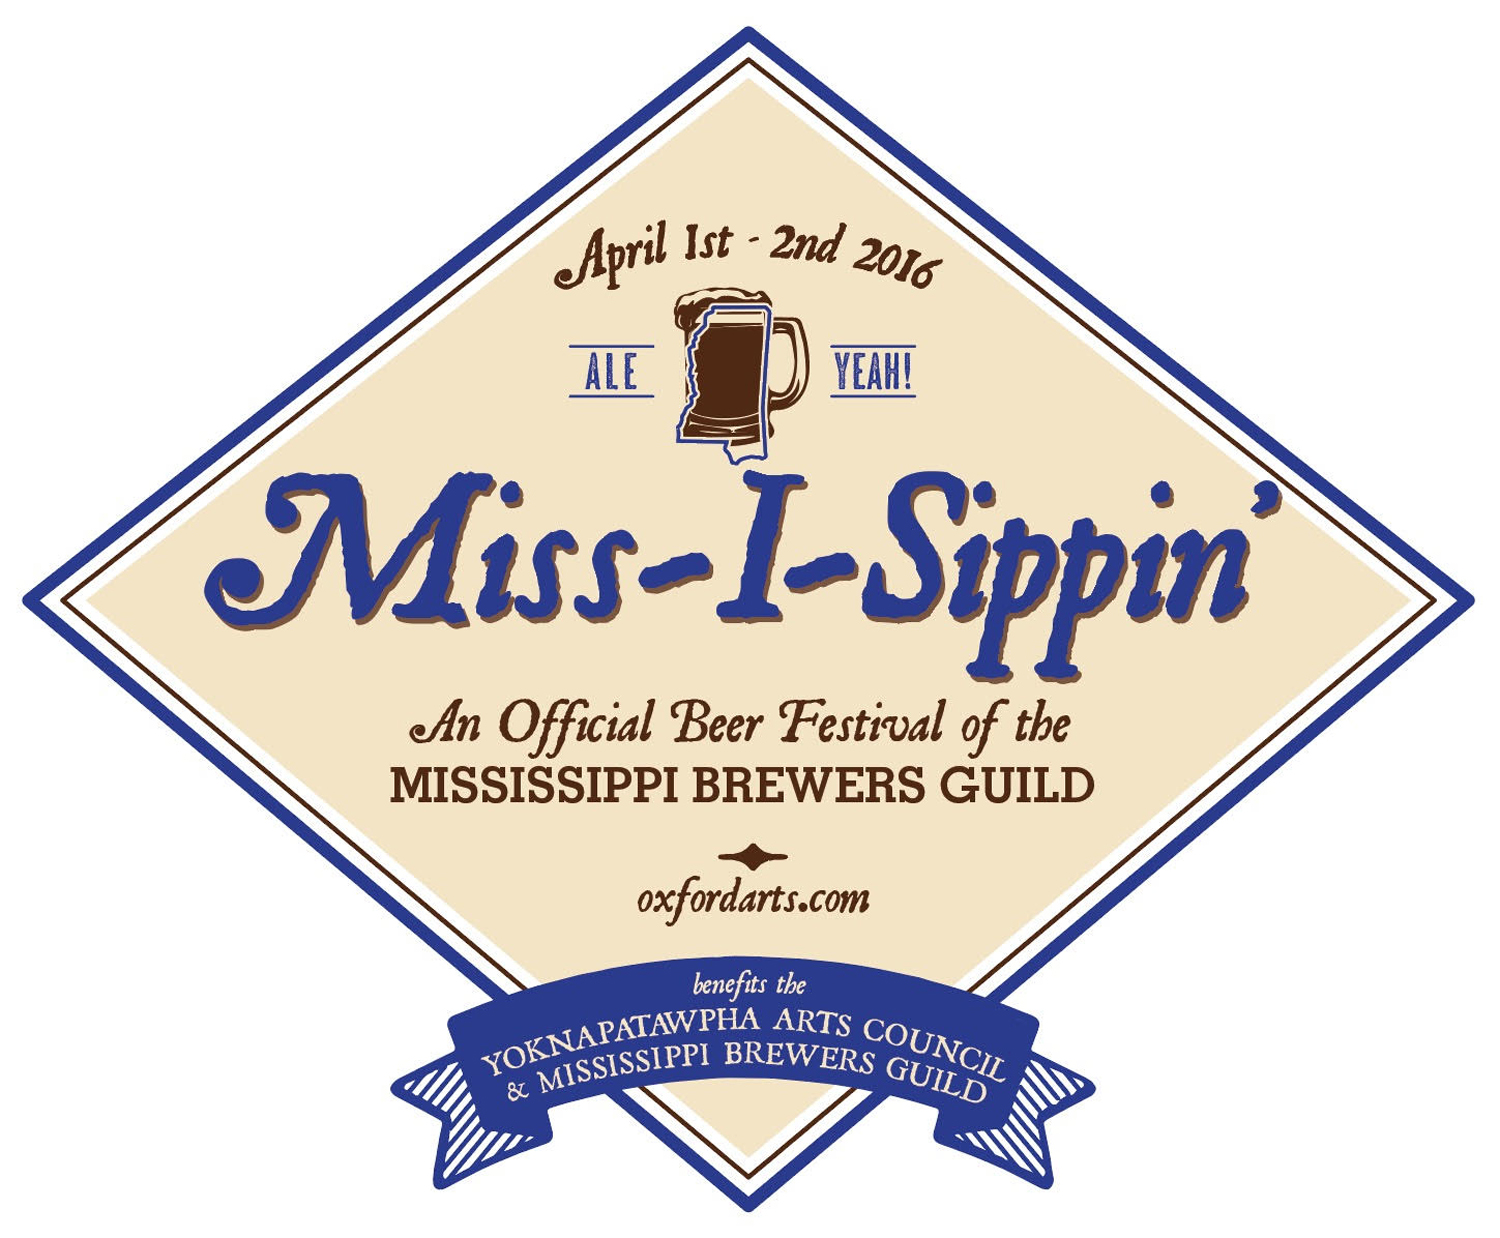 yoknapatawpha arts council to host miss i sippin craft beer